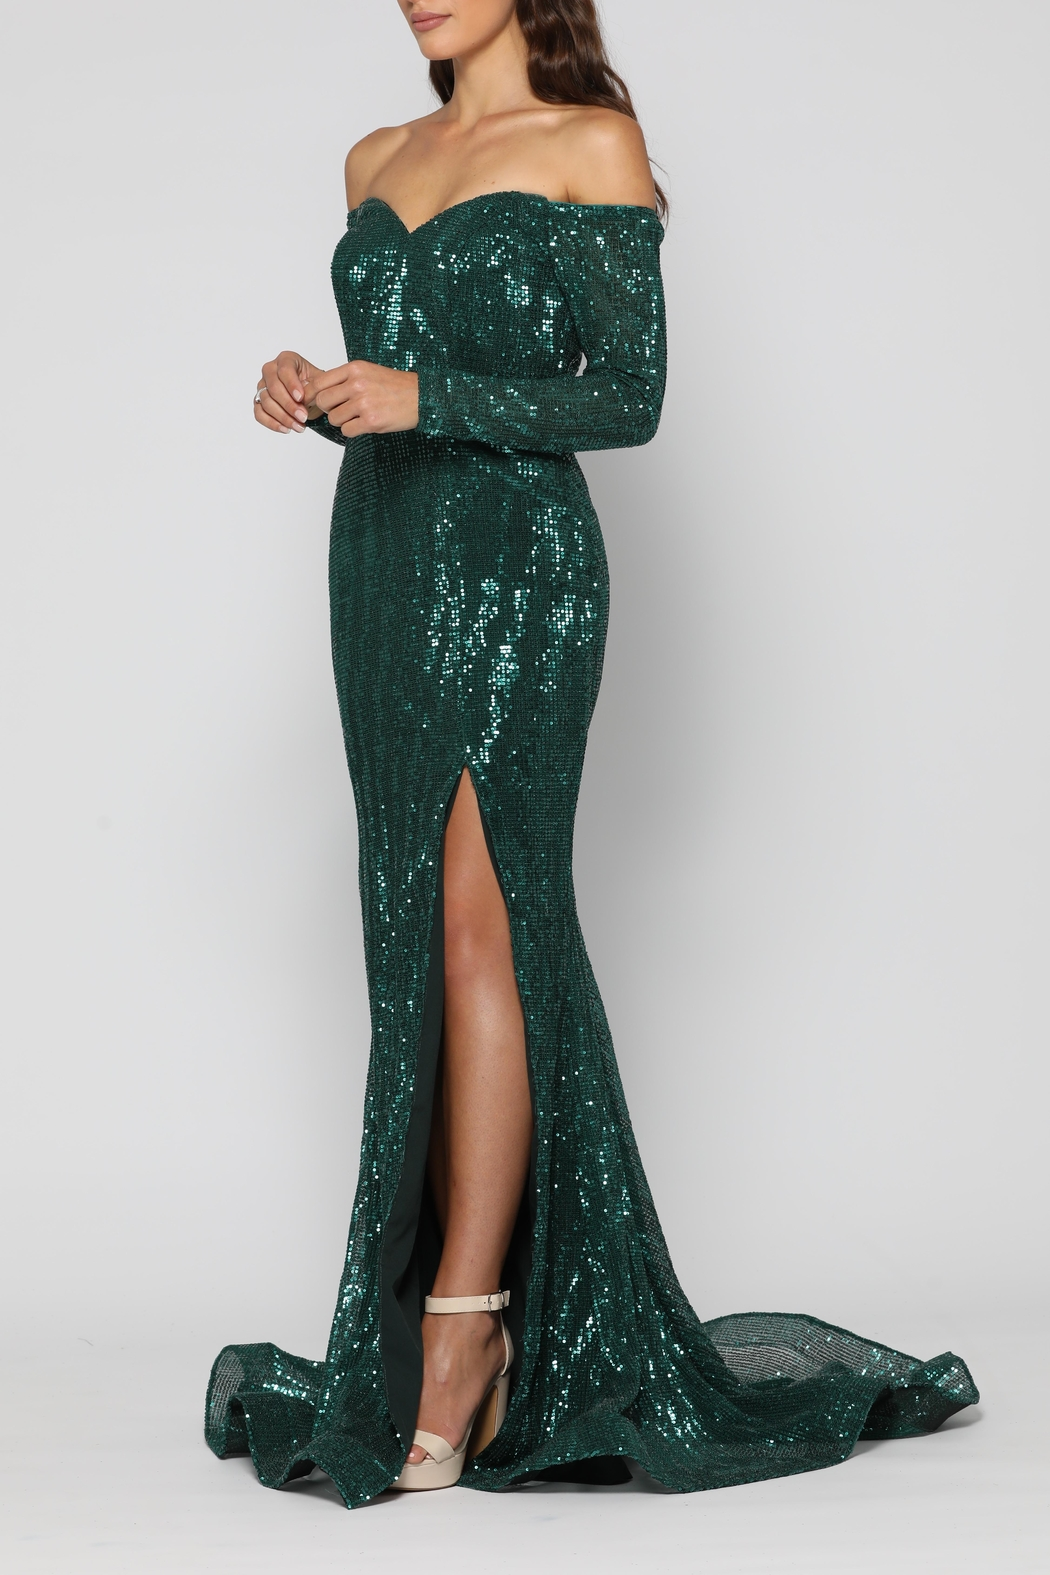 YSS the Label Veronica Gown Emerald - Front Full Image